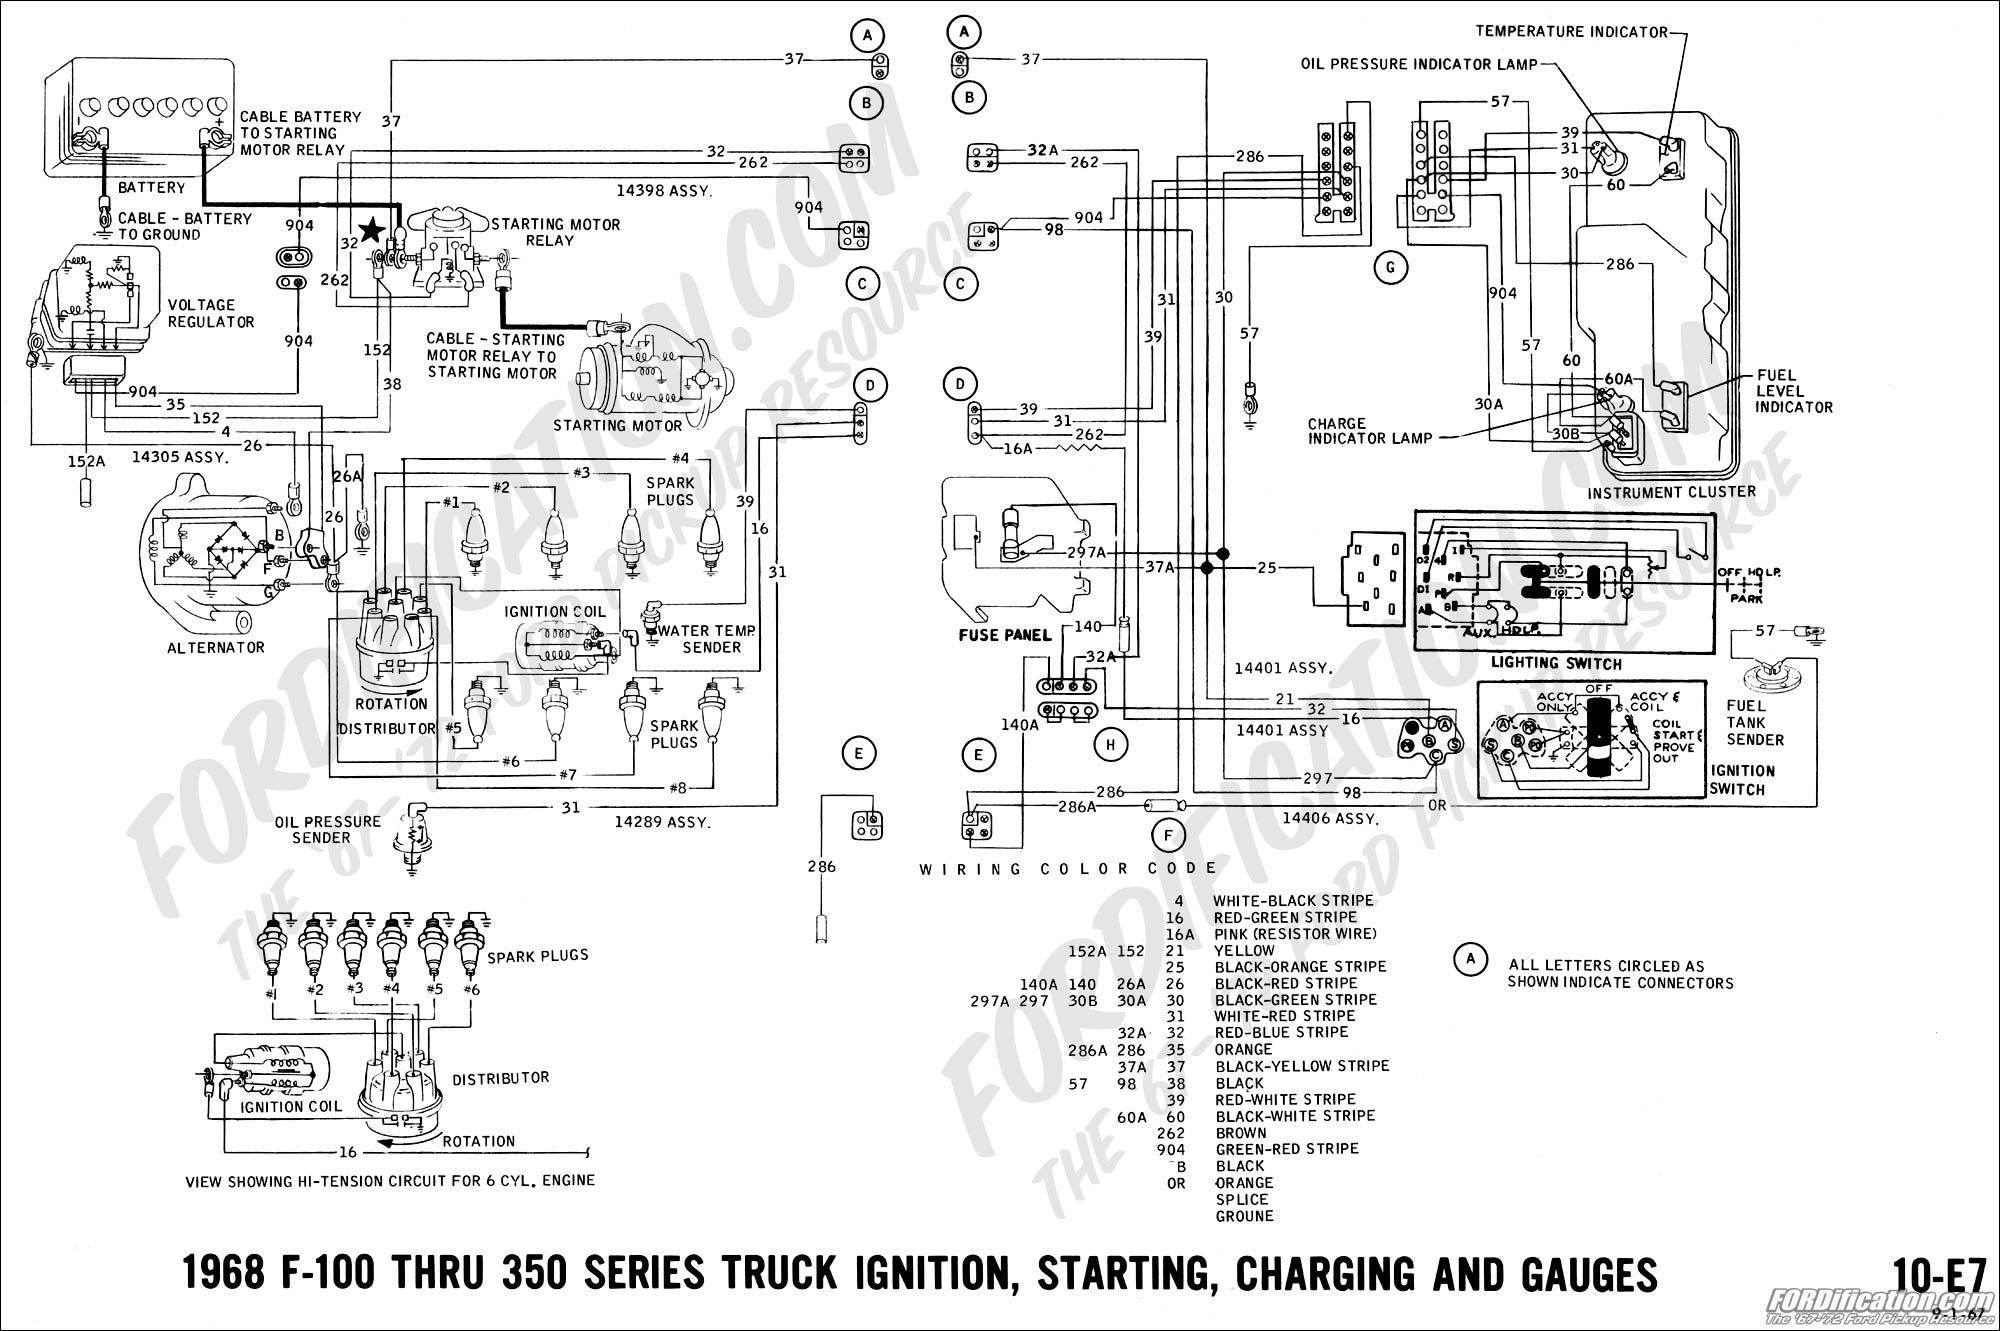 Ford Truck Technical Drawings And Schematics Section H Wiring Diagram 13 Pin Socket Ranger 1968 F 100 Thru 350 Ignition Starting Charging Gauges